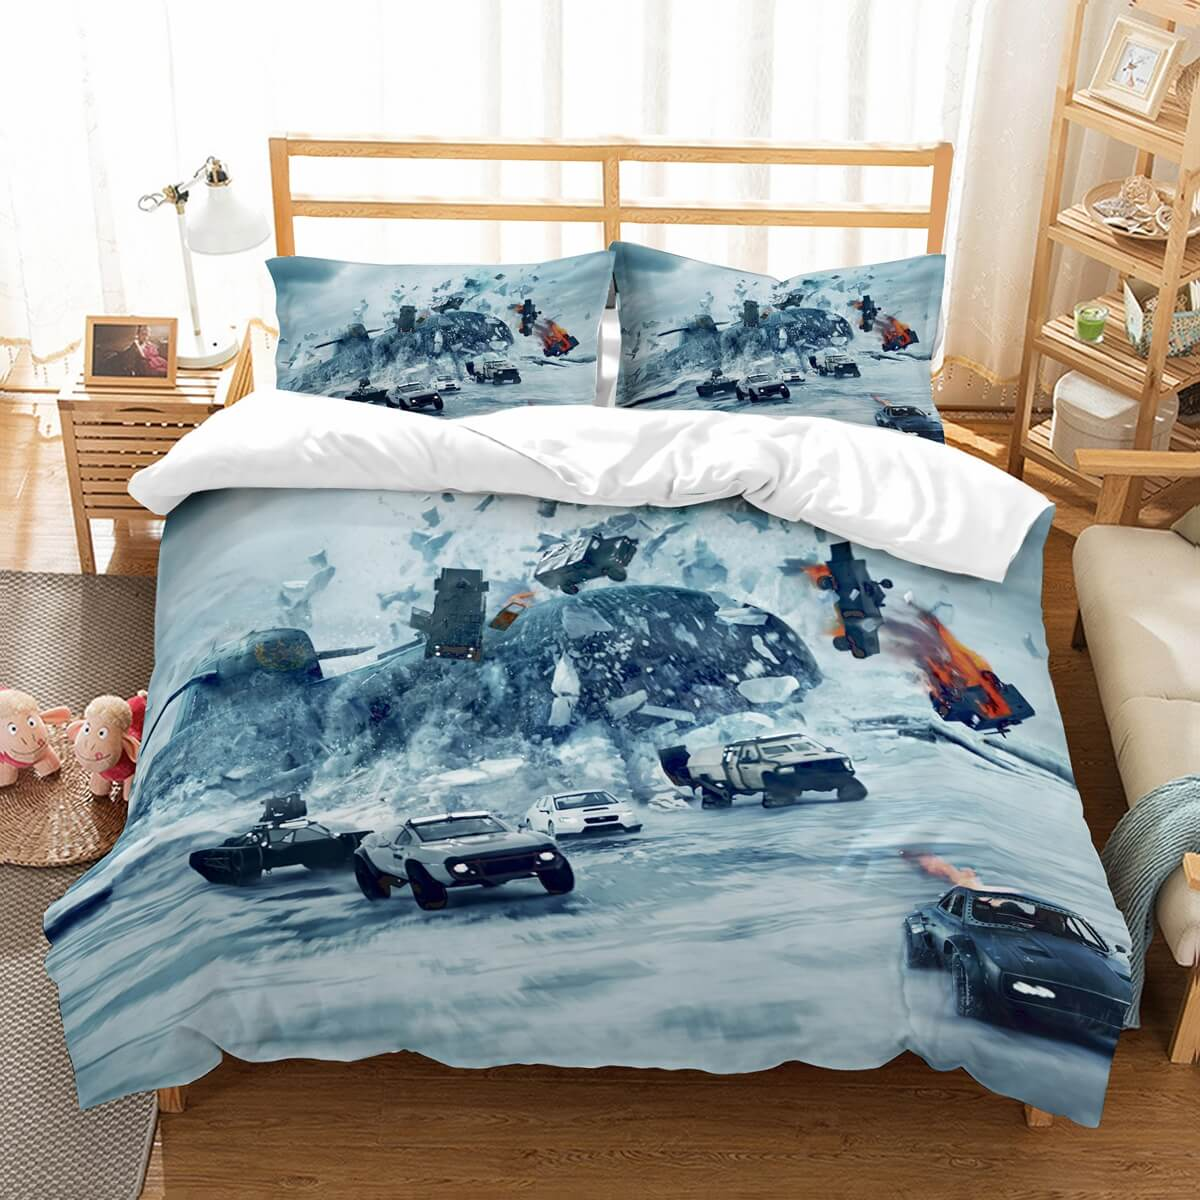 3D Customize The Fate Of The Furious Bedding Set Duvet Cover Set Bedroom Set Bedlinen